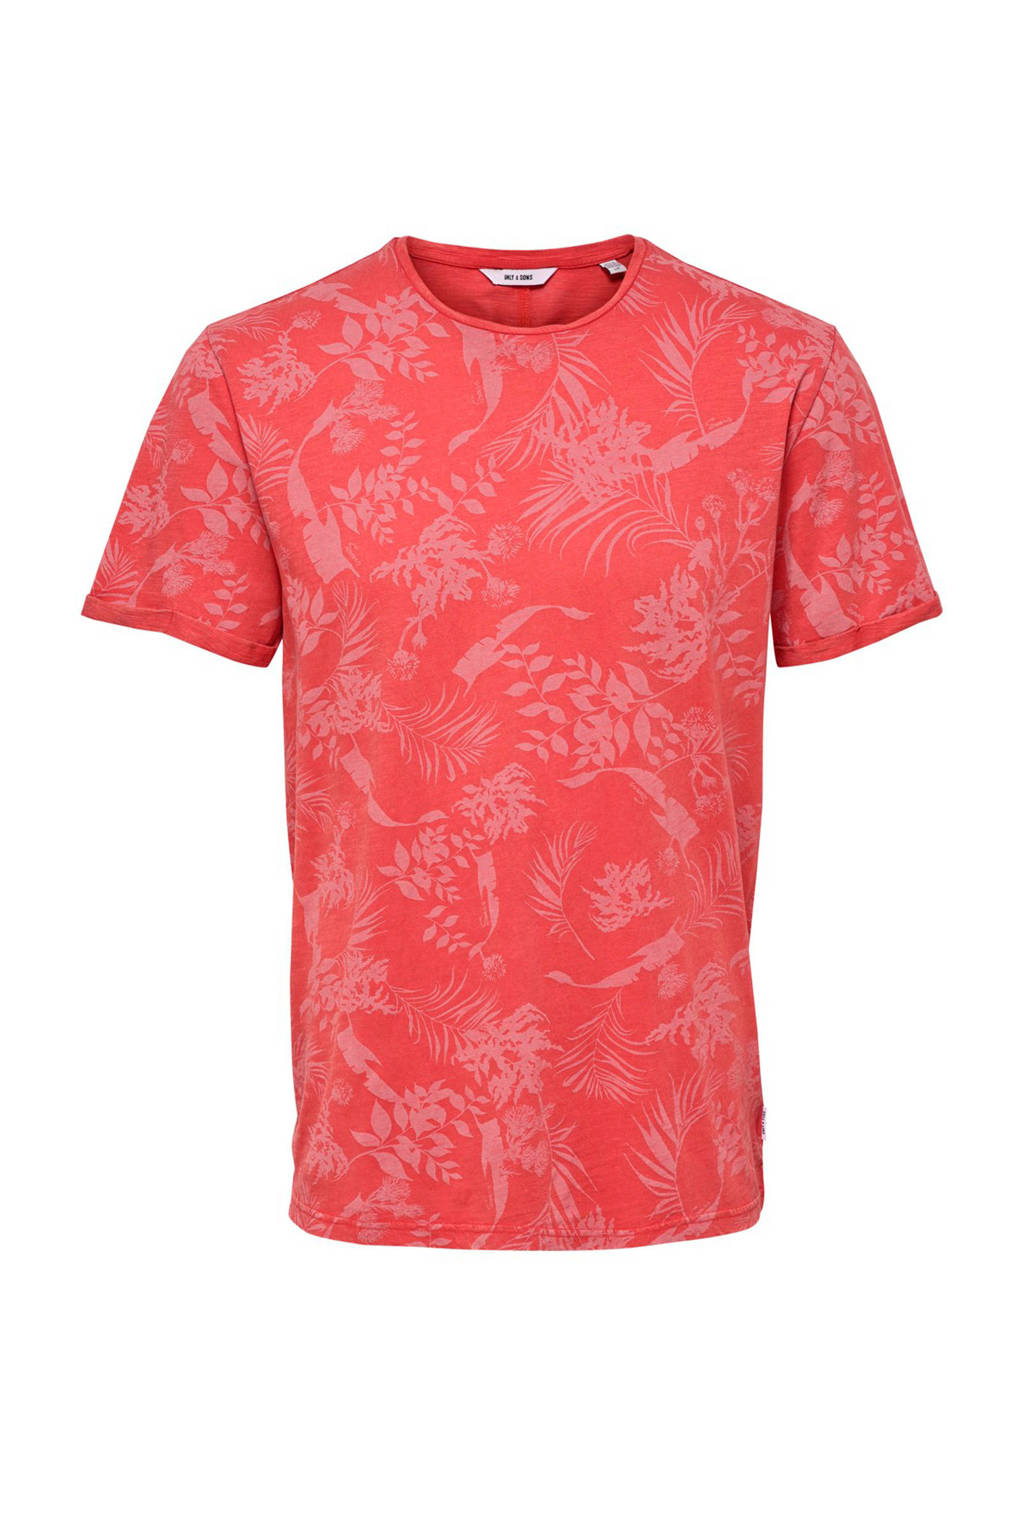 Only & Sons T-shirt met all over print, Rood